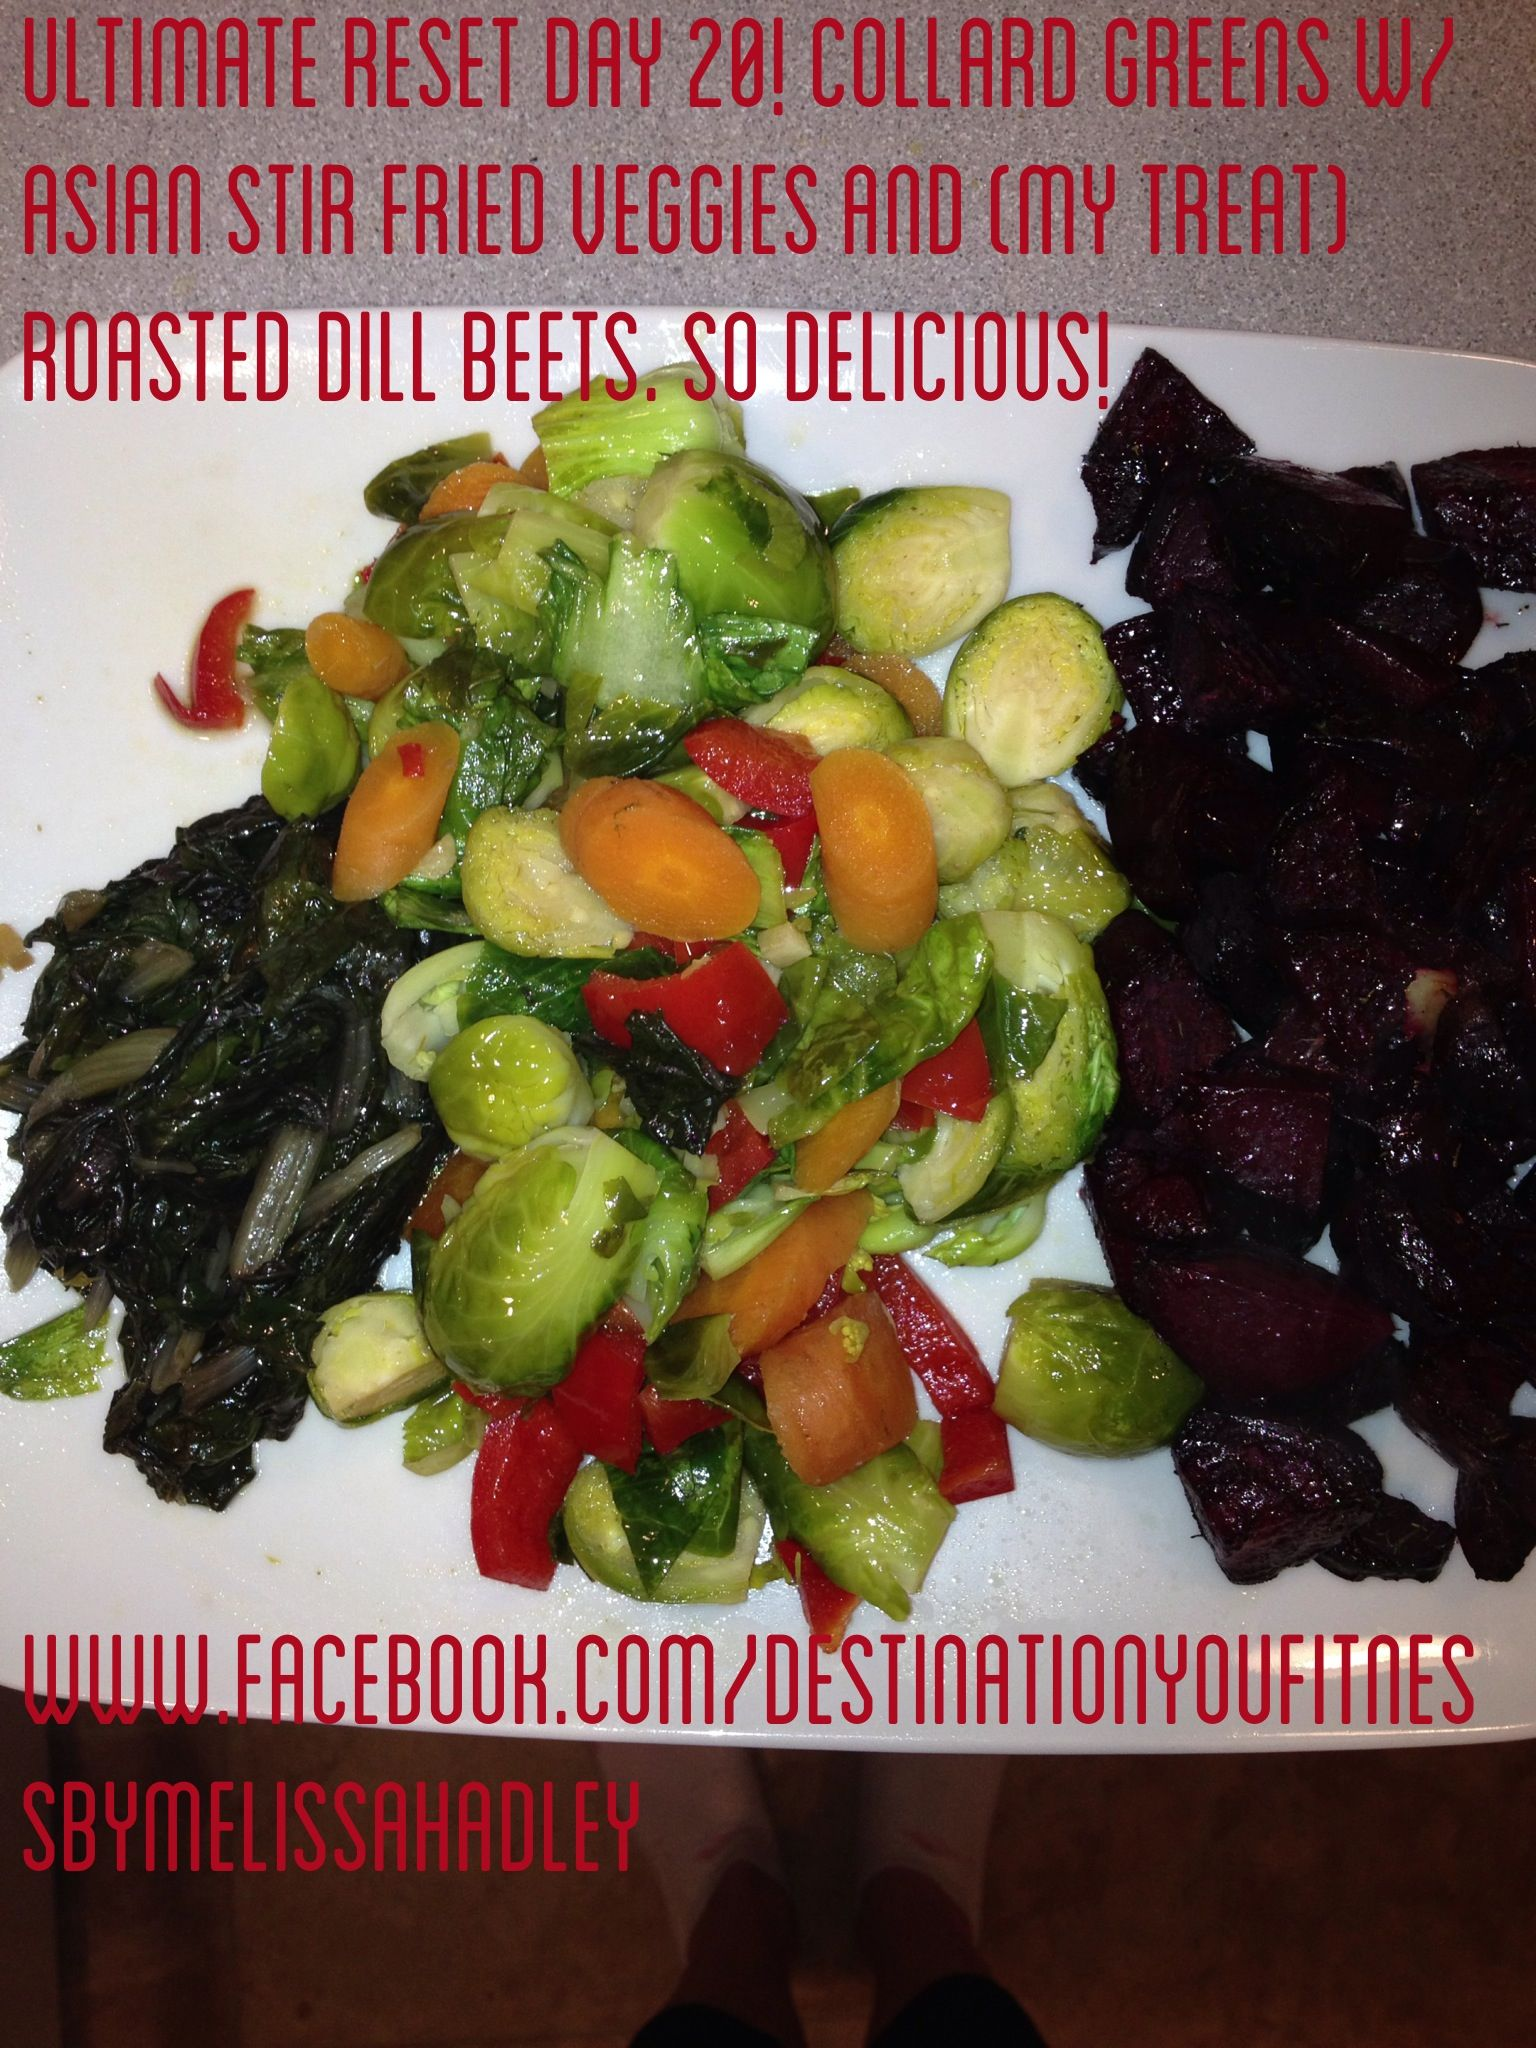 Day 20 of the Ultimate Reset! Do flipping delicious! Mediterranean beets with some dill, Asian stir fried veggies and braised collard greens....ahhh love! www.facebook.com/destinationyoufitnessbymelissahadley www.myultimatereset.com/gettingitback4